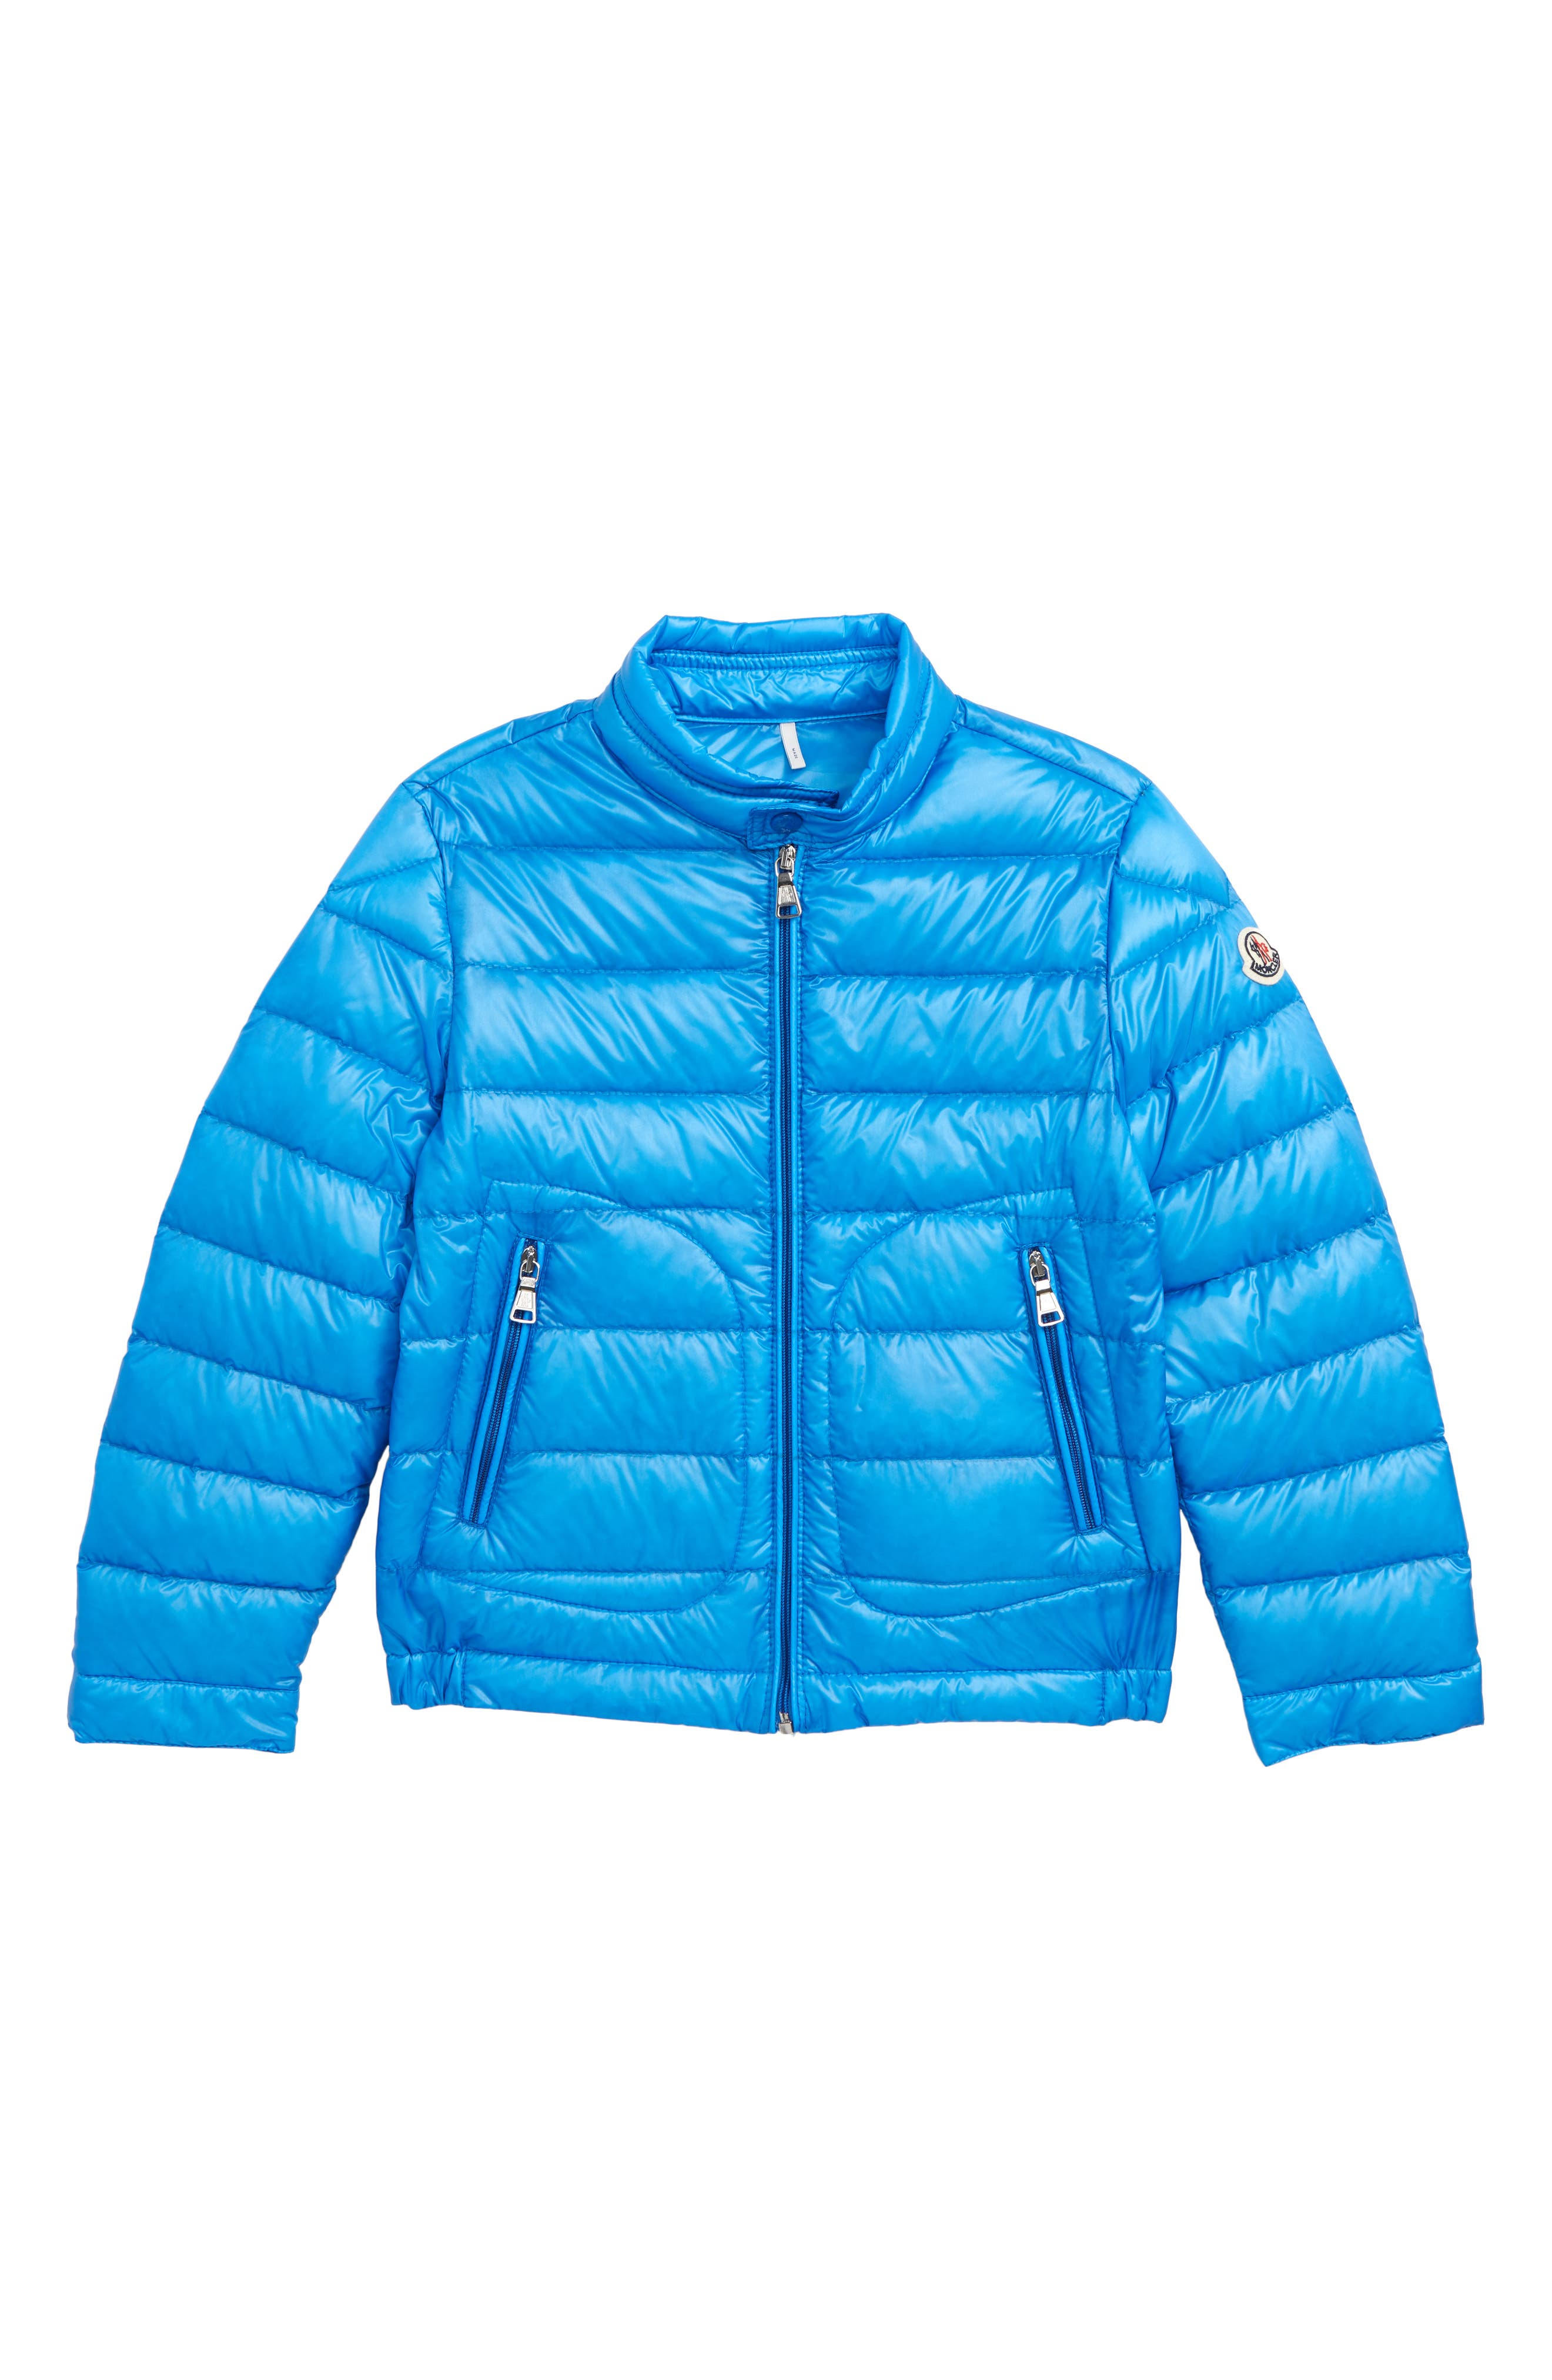 6307cae1a064 Boys Down Jackets and Vests